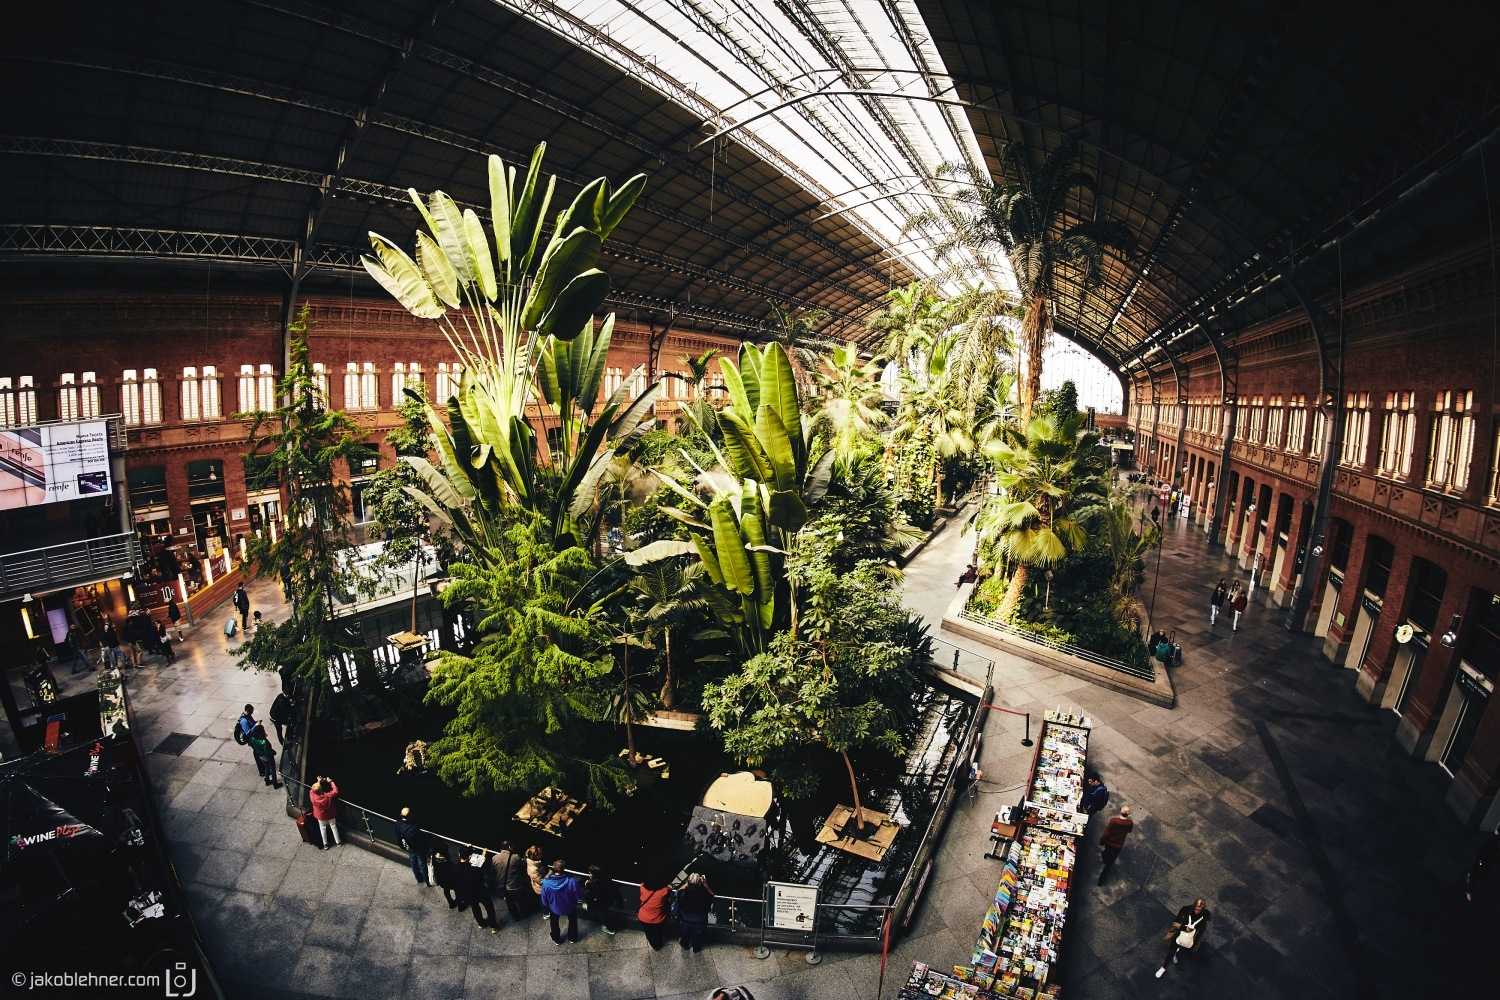 Coolest Railwaystaition ever by Jakob Lehner